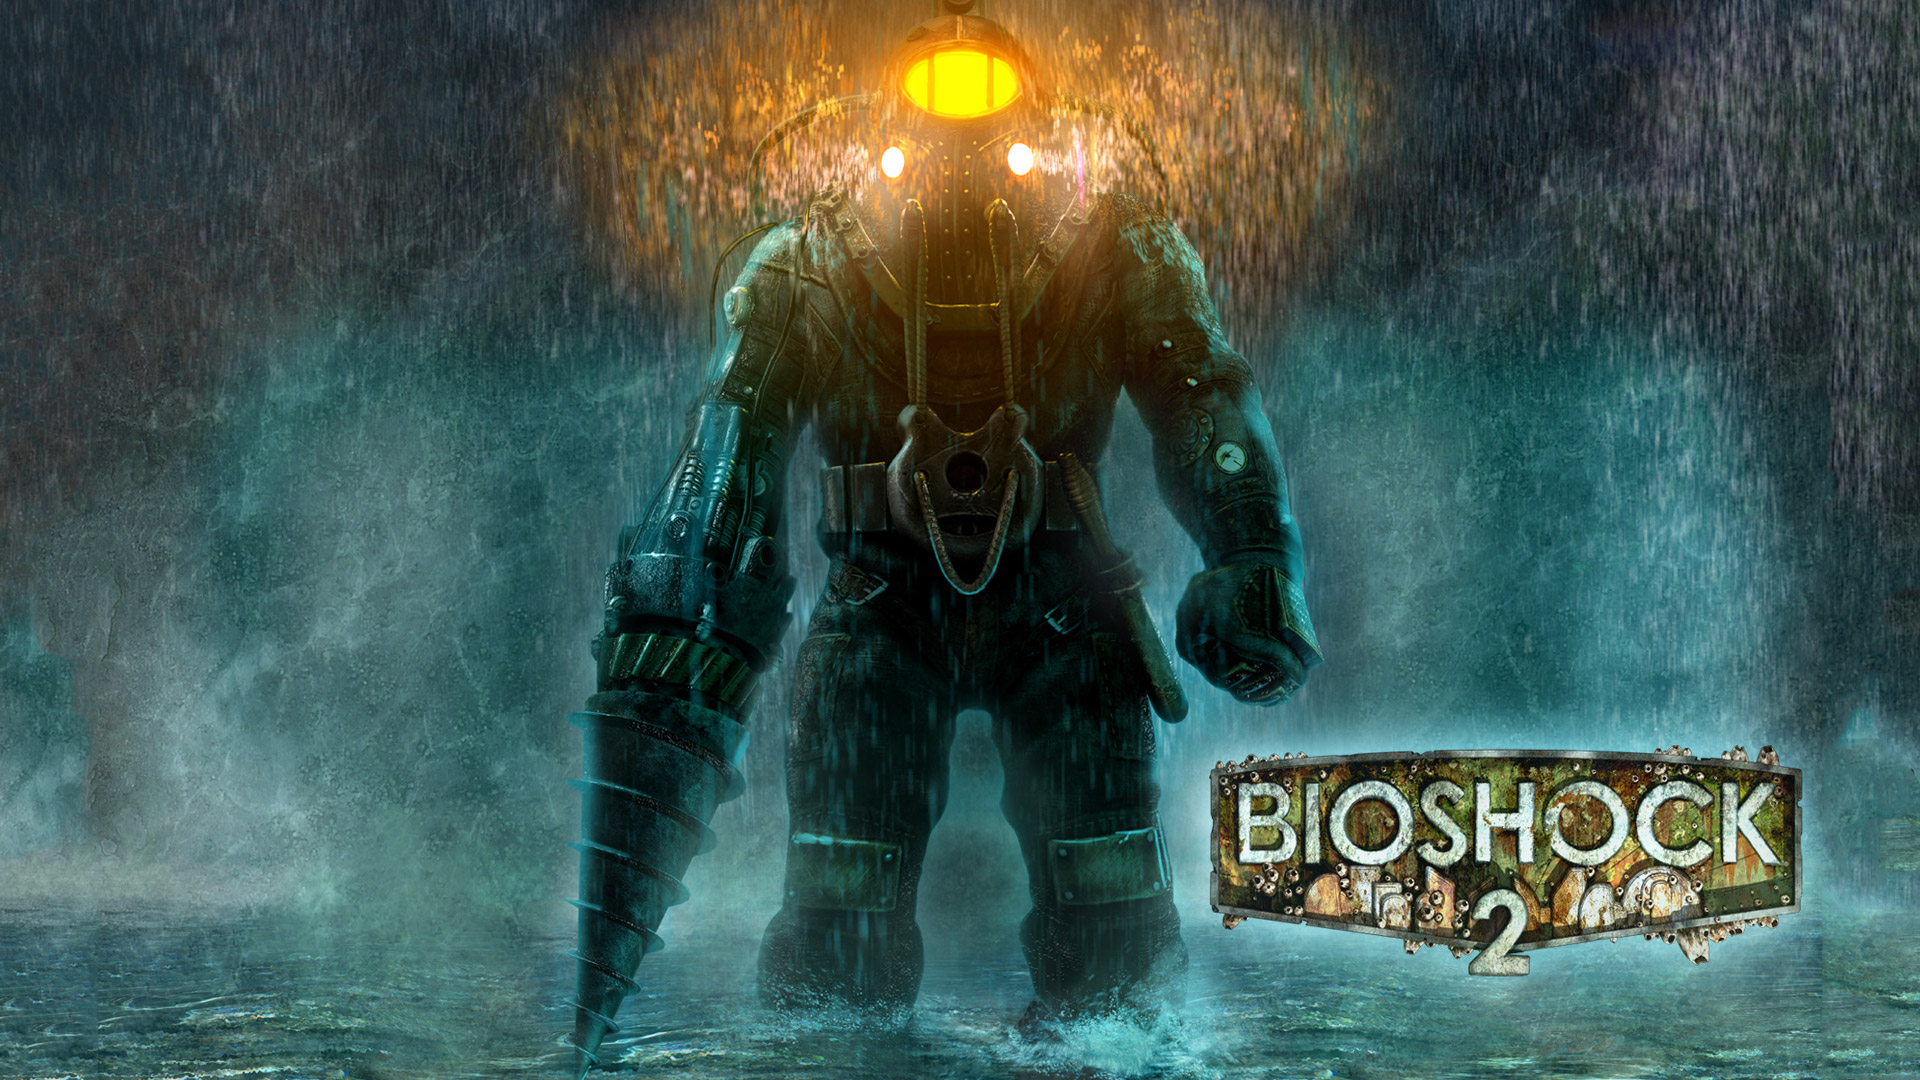 Bioshock 2 wallpaper 10